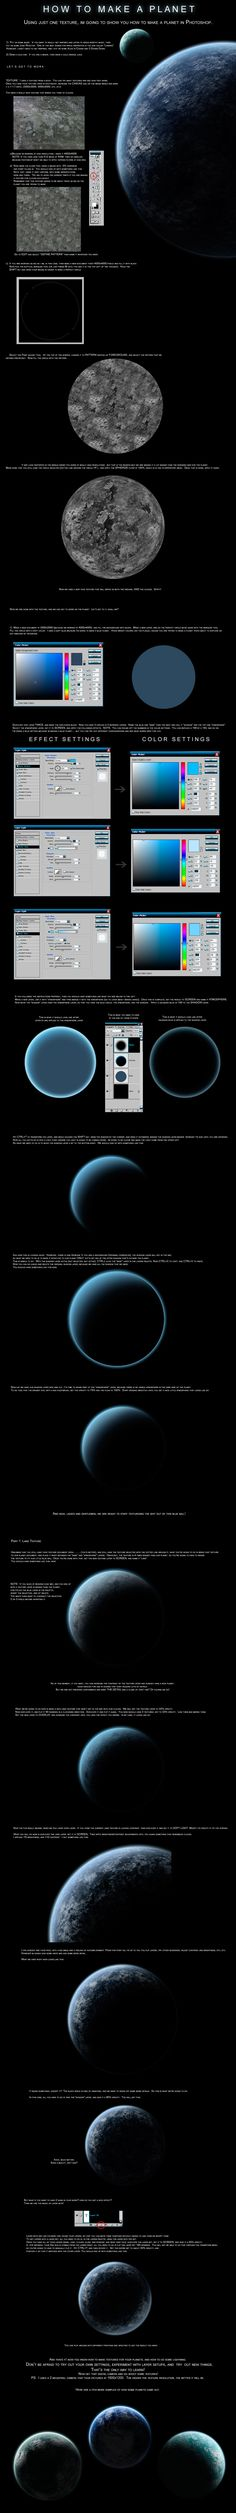 Photoshop Digital Painting Tutorial How to Create a Realistic Planet Realism